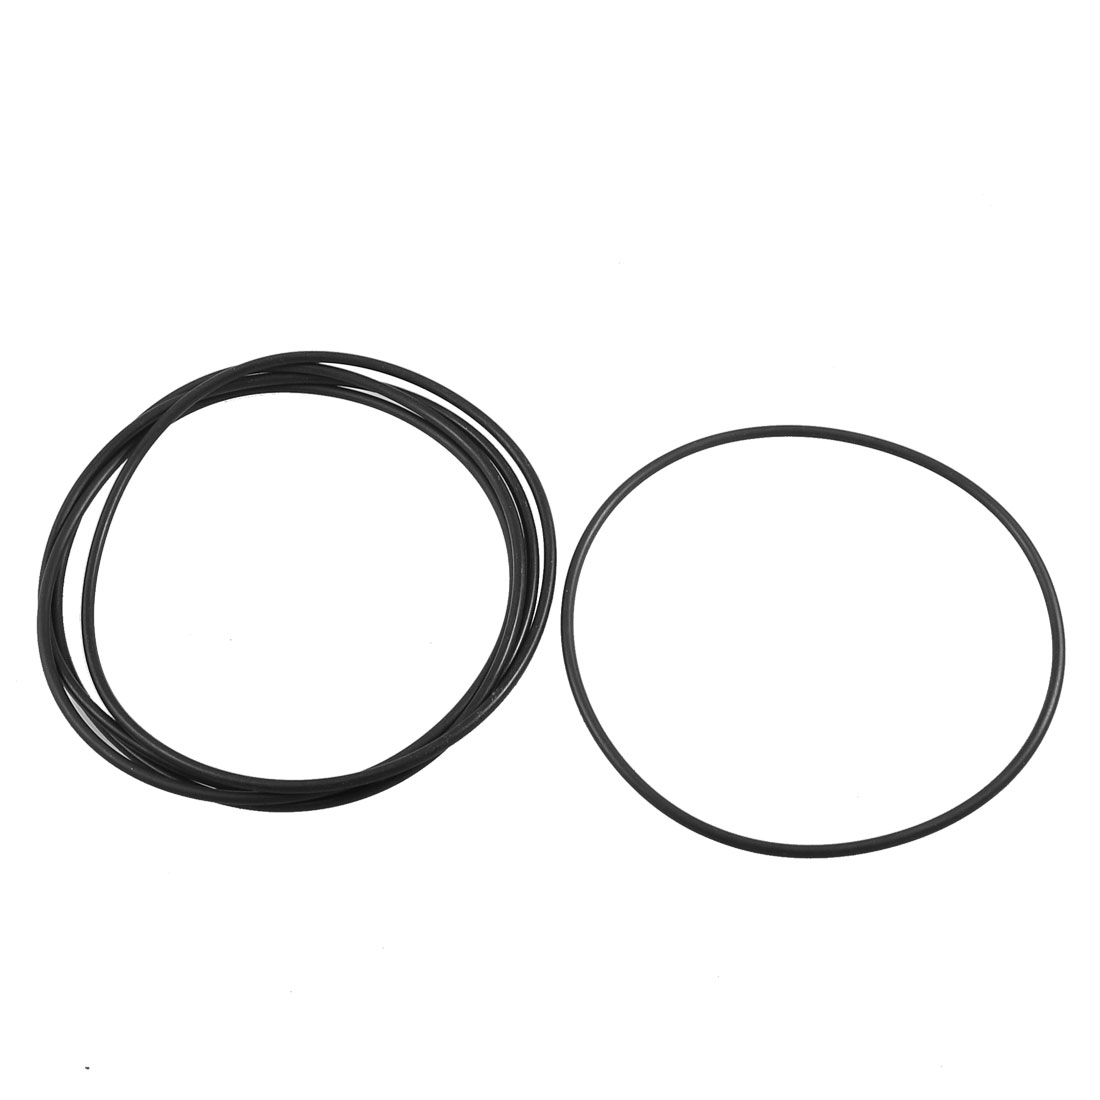 5 Pcs Mechanical Flexible Rubber O Ring Oil Seal Gaskets 115mm x 109mm x 3.1mm